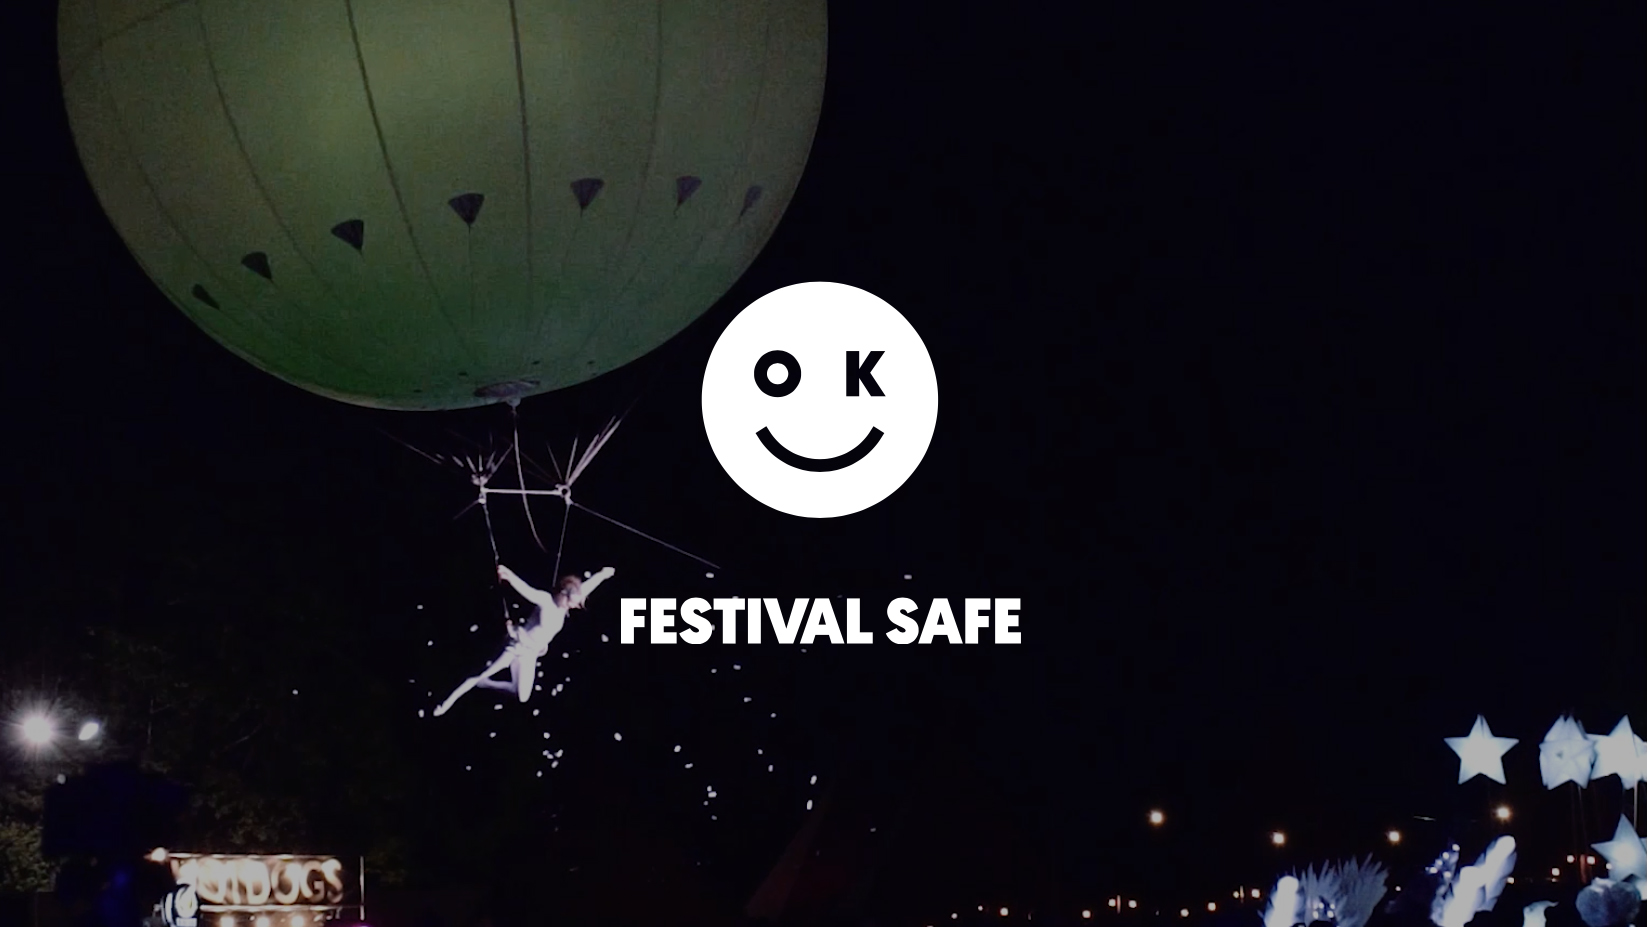 <div>Global launches new Festival safety initiative, Festival Safe</div>